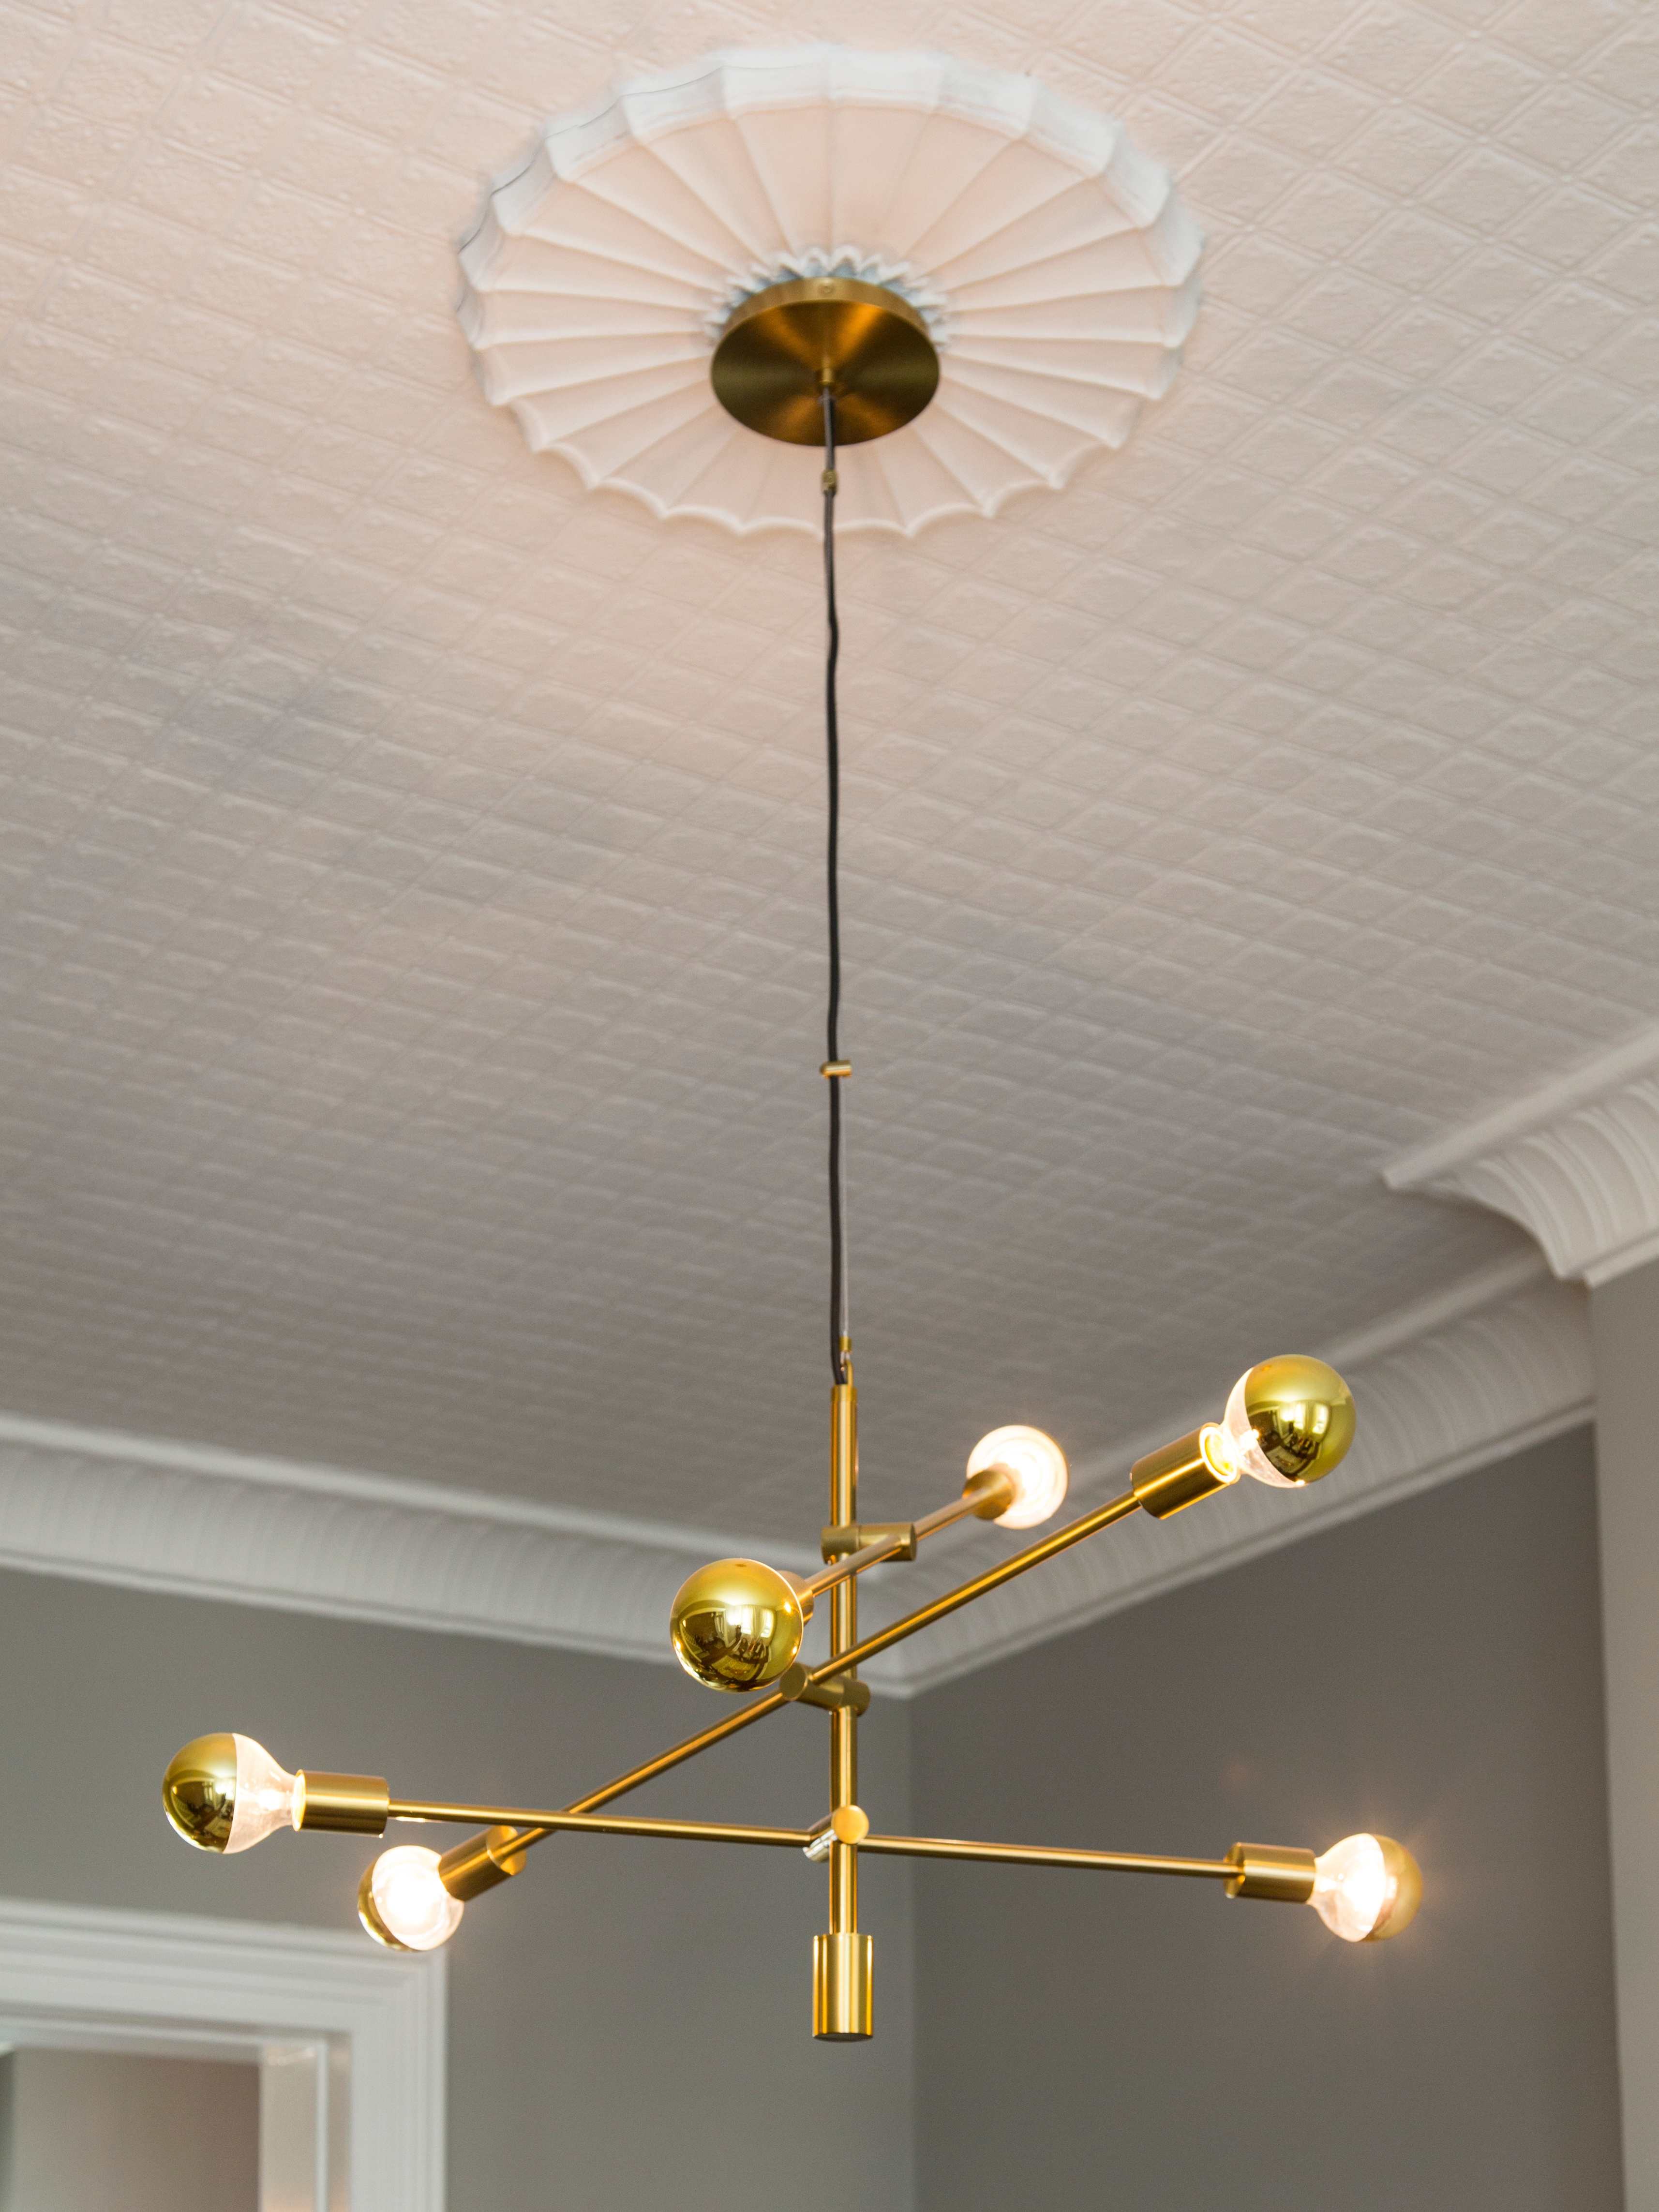 three-armed gold fixture